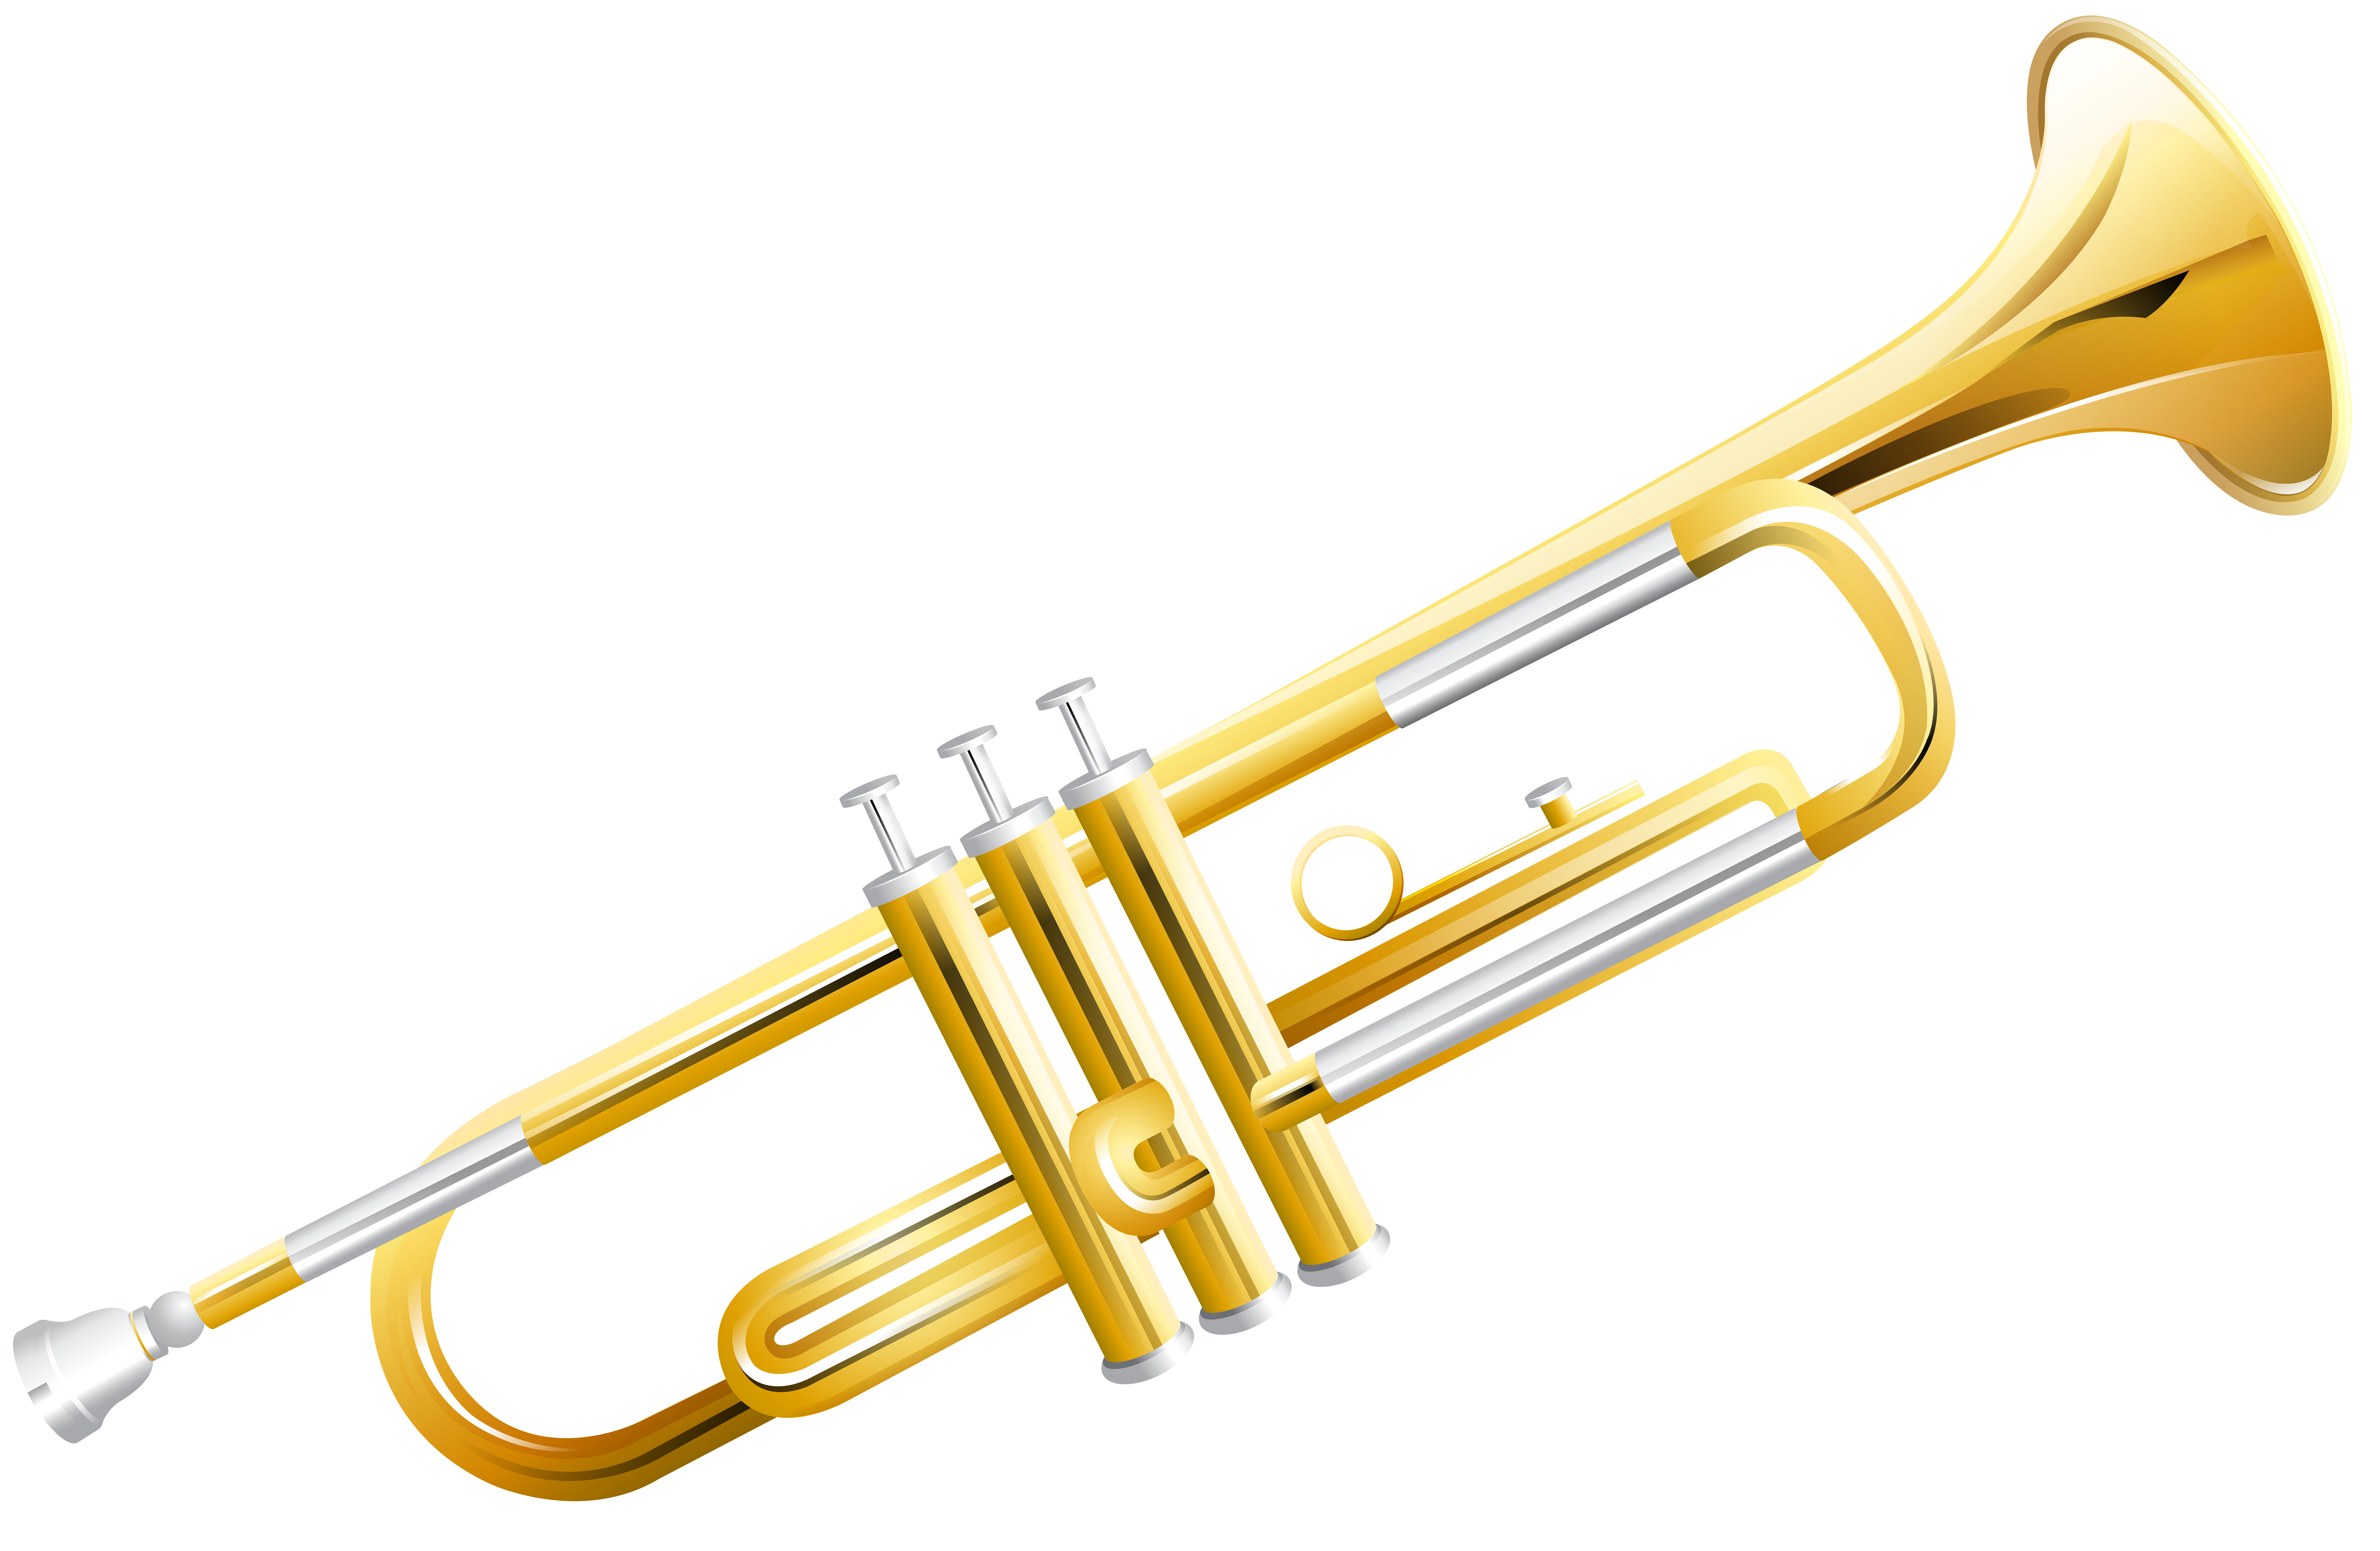 trumpet png clip art image gallery yopriceville high quality images and transparent png #29527